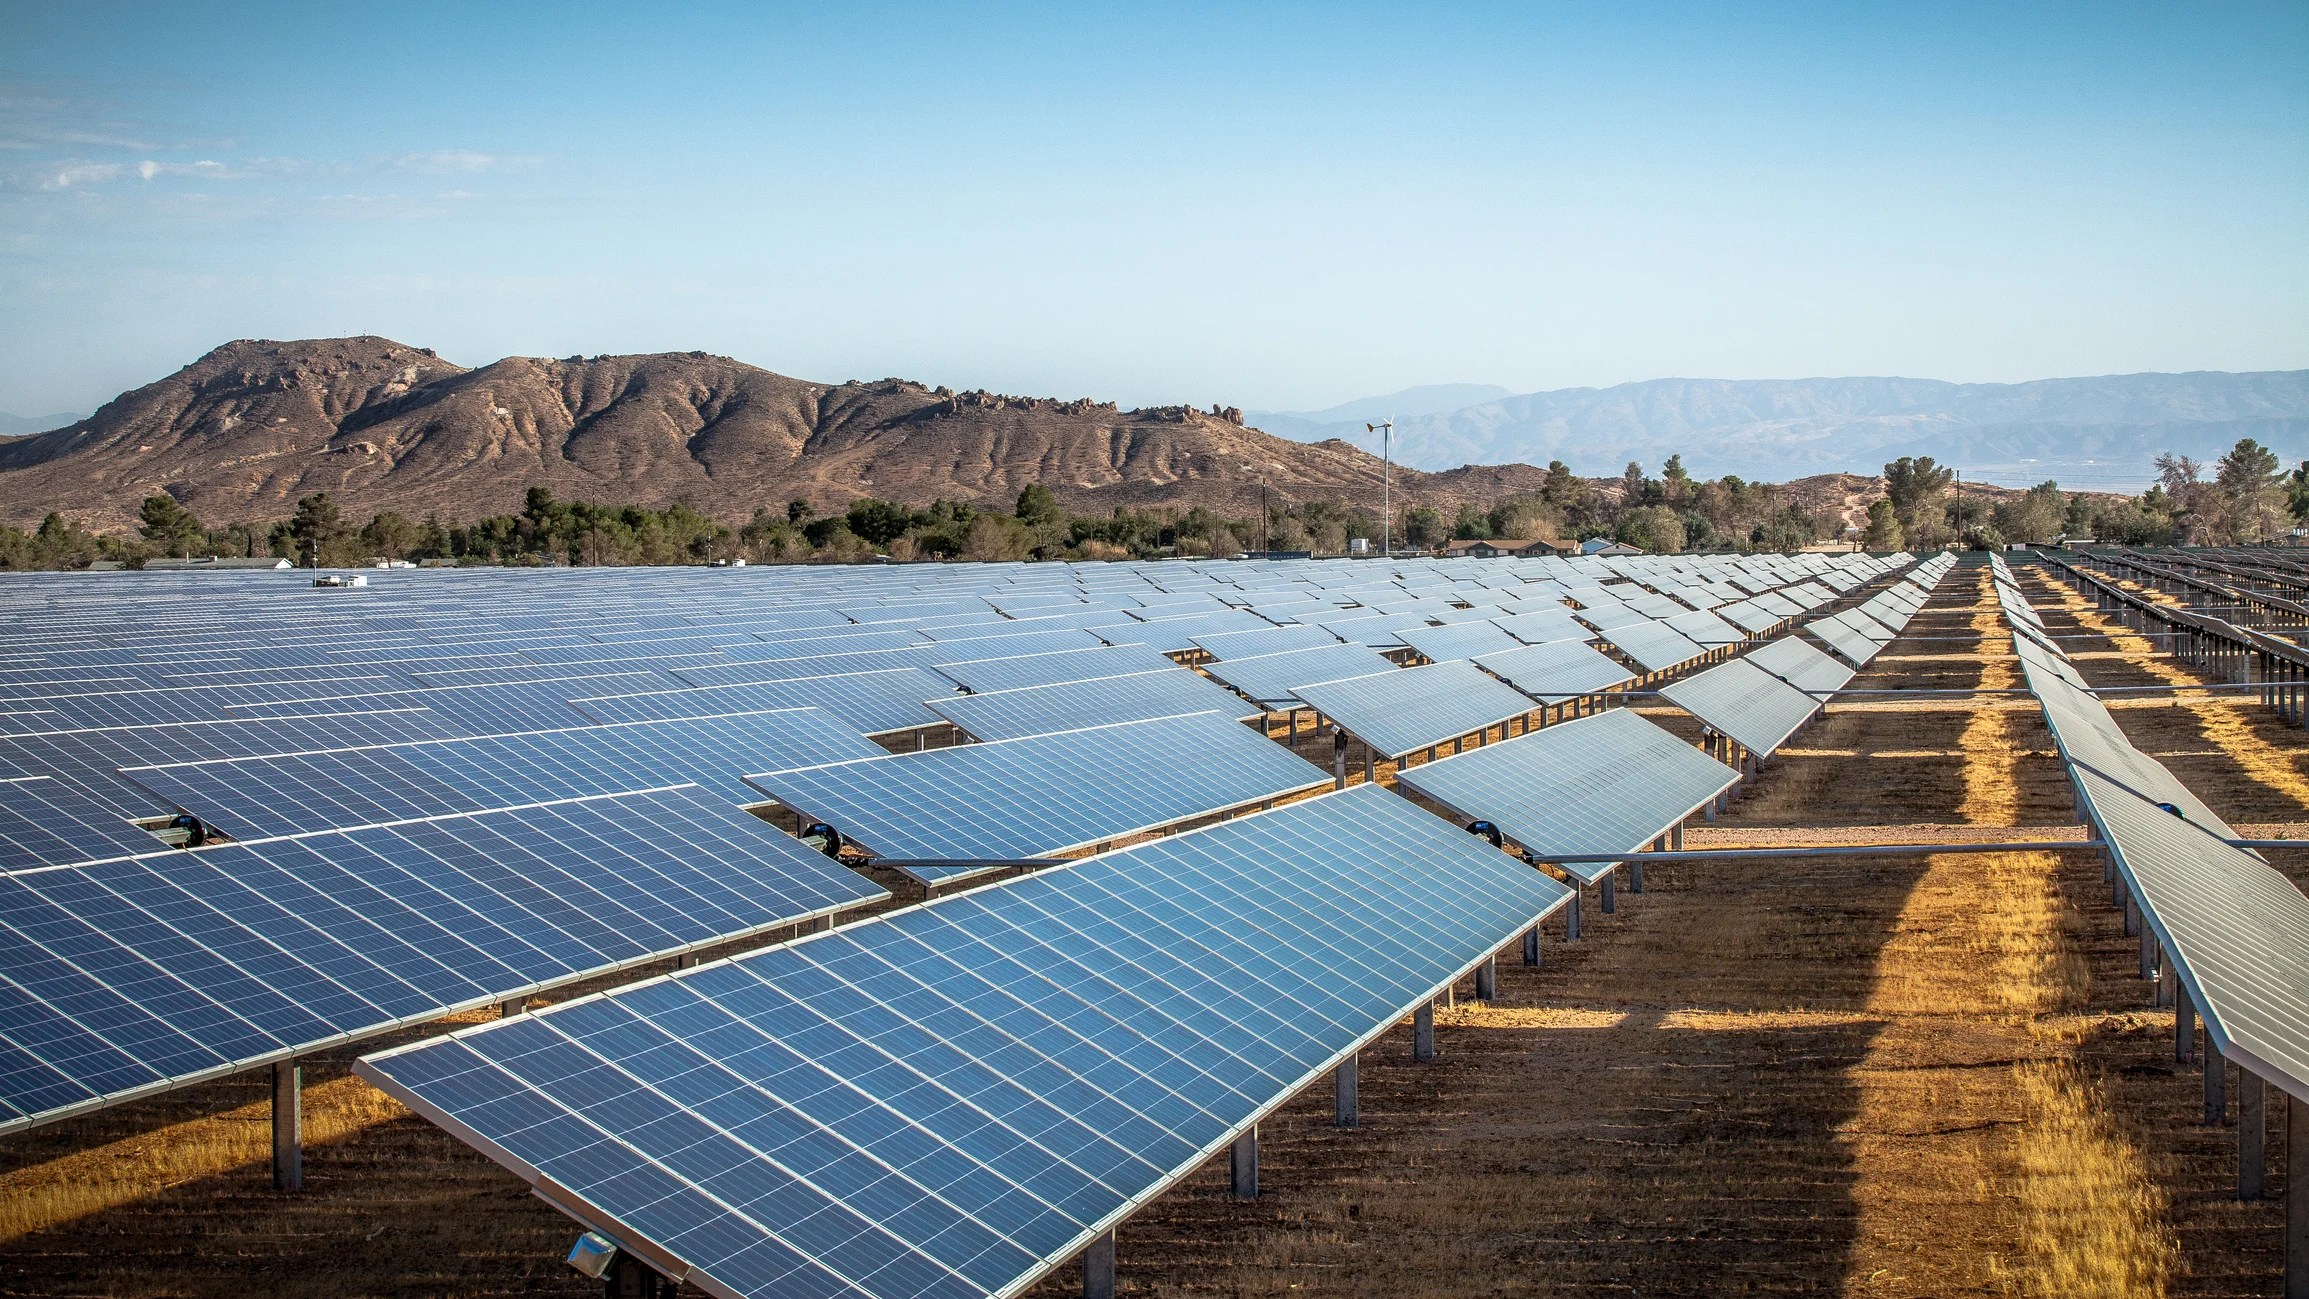 Invest Advisor This Could Be Solar Energy's Next Big Leap Forward | The